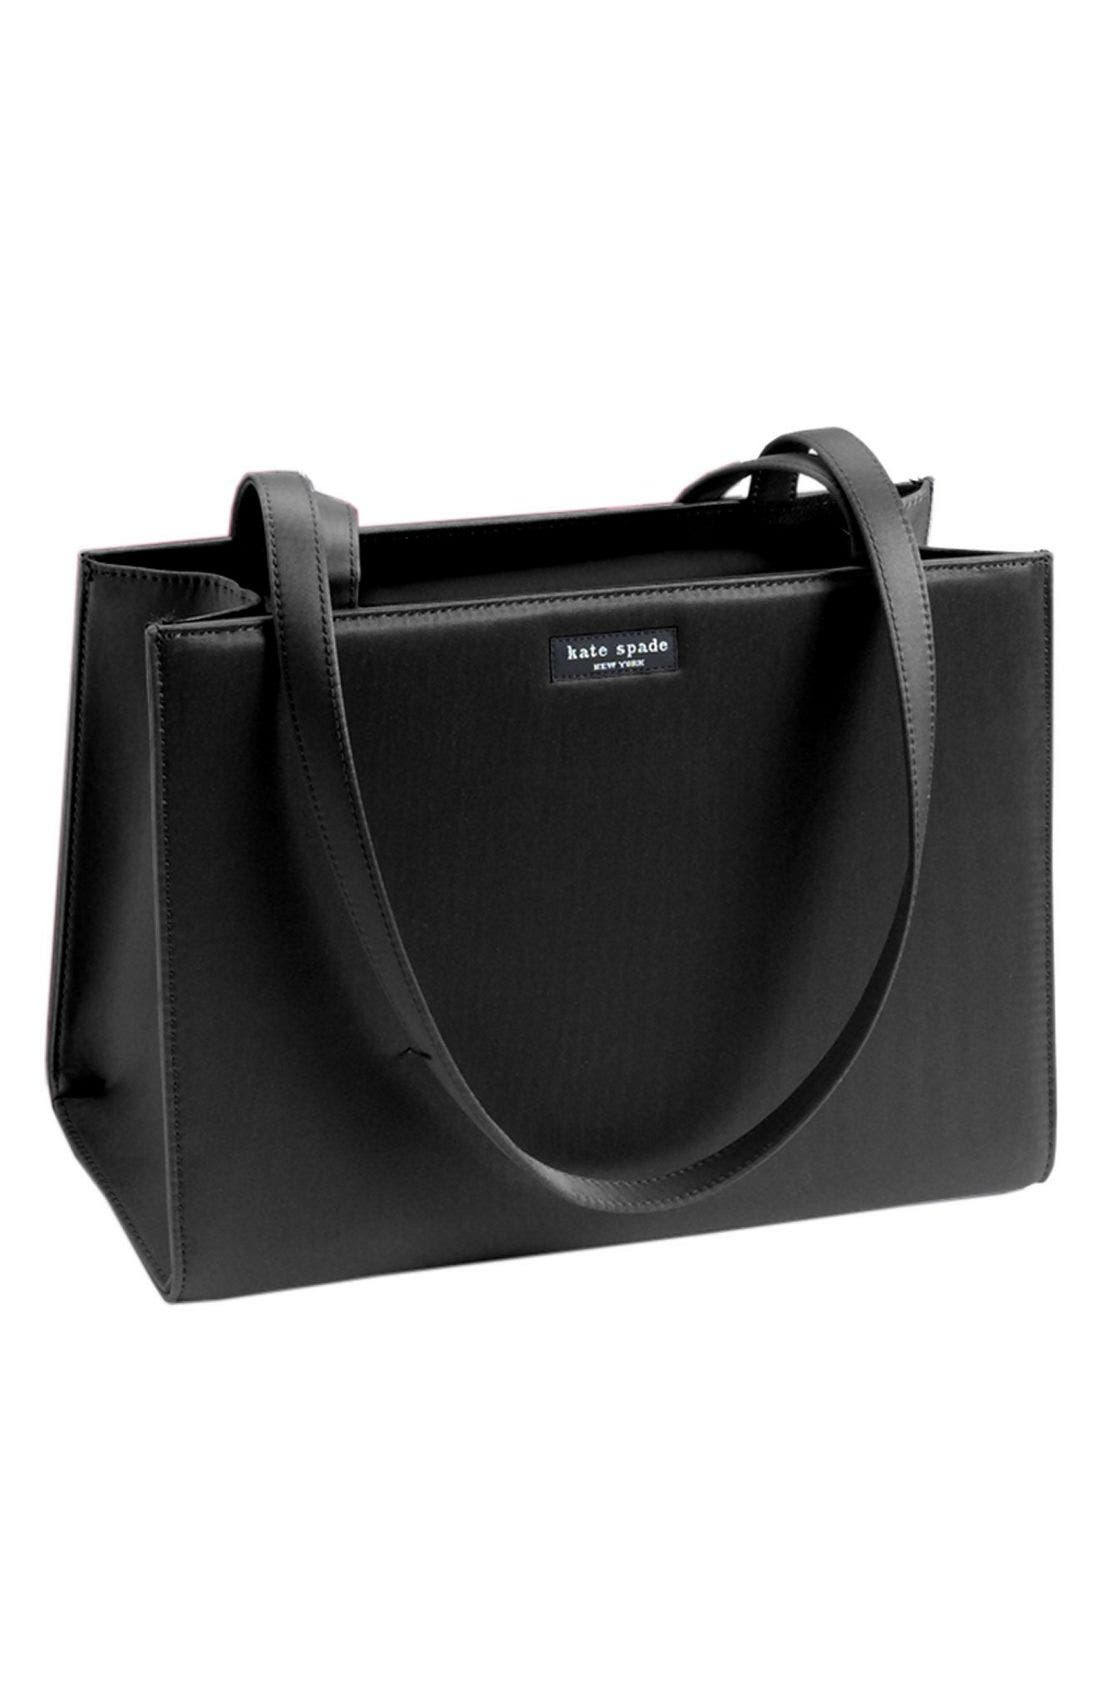 Alternate Image 1 Selected - kate spade 'sam' handbag